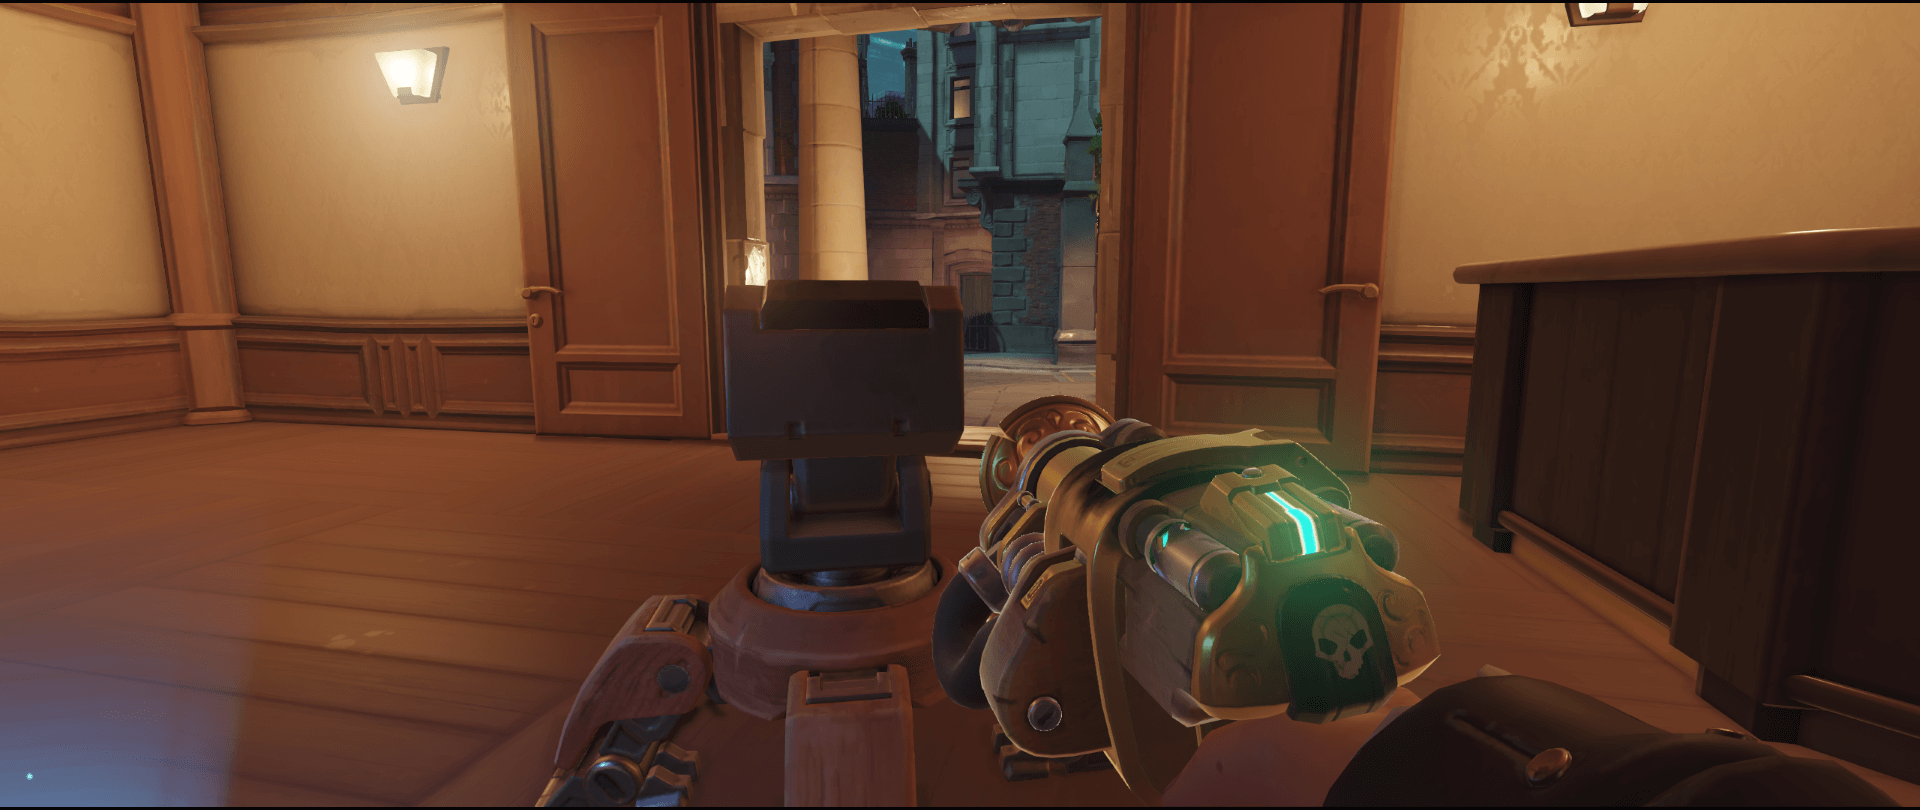 Torbjorn turret spot King's Row first point Overwatch